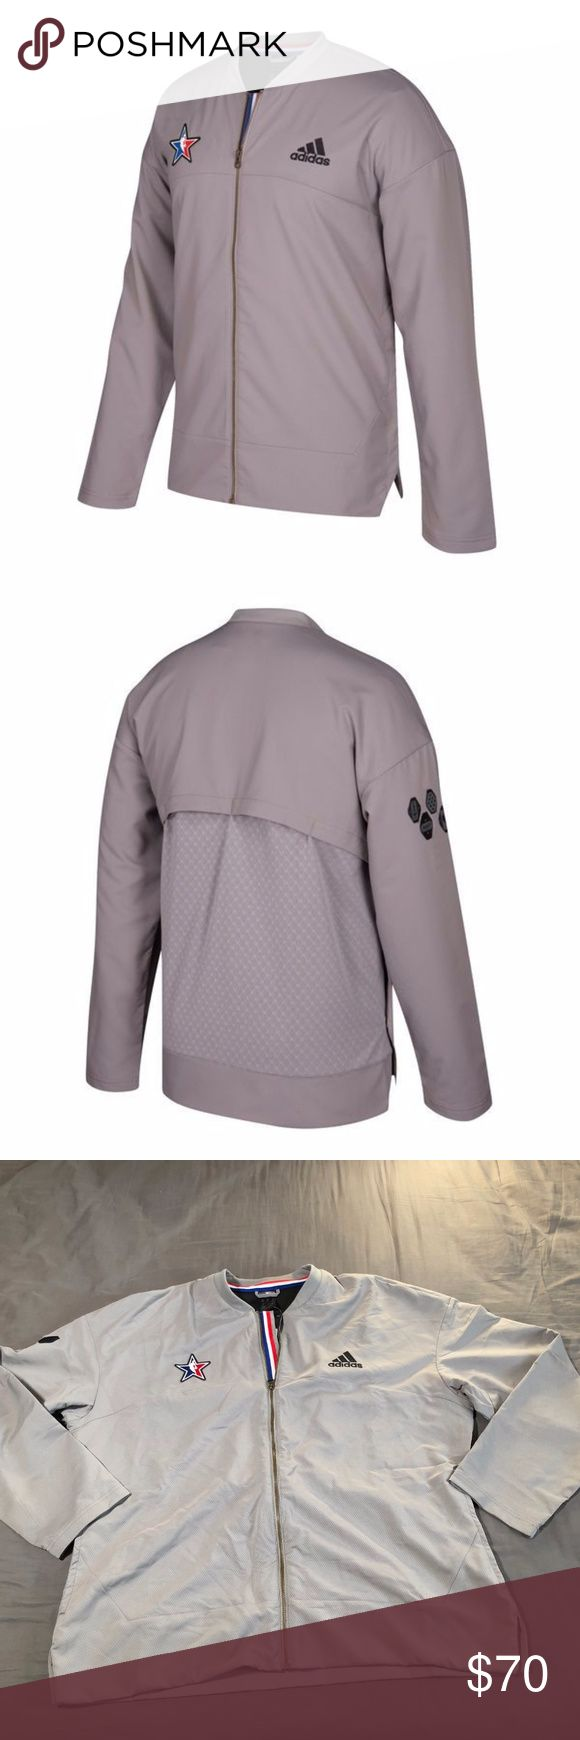 Adidas 2017 NBA All-Star On-Court Full Zip Jacket NWT Adidas Men's 2017 NBA All-Star Official Authentic On-Court Full Zip Jacket 2XL adidas Jackets & Coats